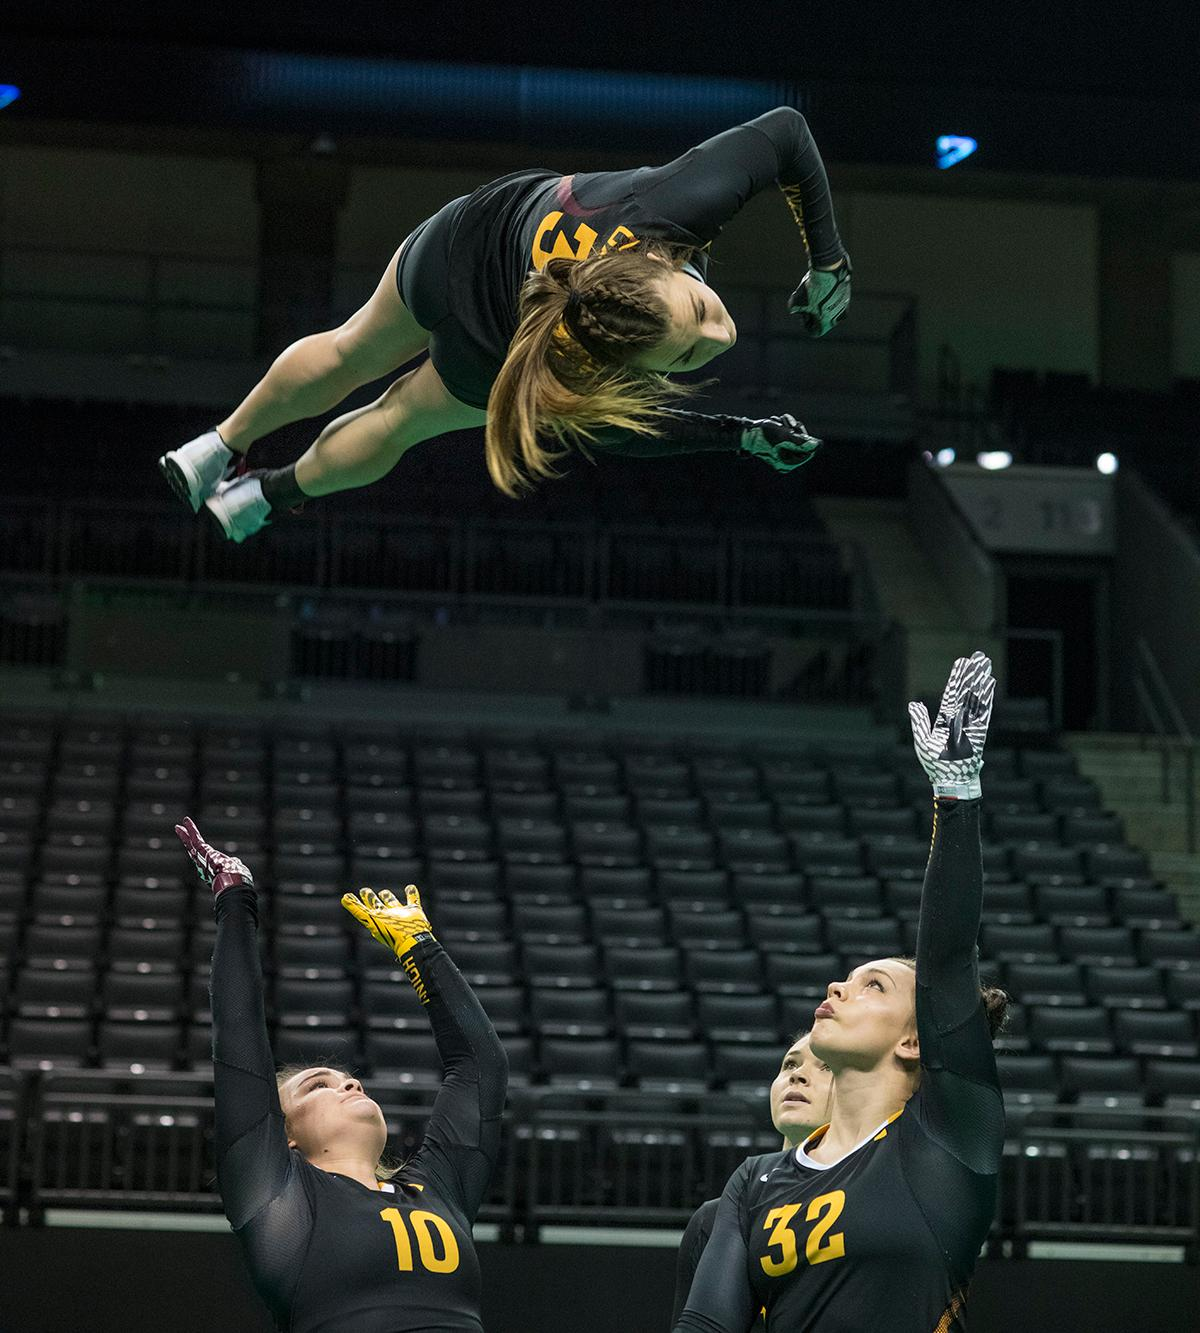 In a tri-meet in Mathew Knight Arena Sunday afternoon, the Ducks came in second, defeating Gannon University but losing to Quinnipiac. The final score tallies were Quinnipiac 274.585, Oregon Ducks 272.23, and Gannon 271.93. Photo by Dan Morrison, Oregon News Lab